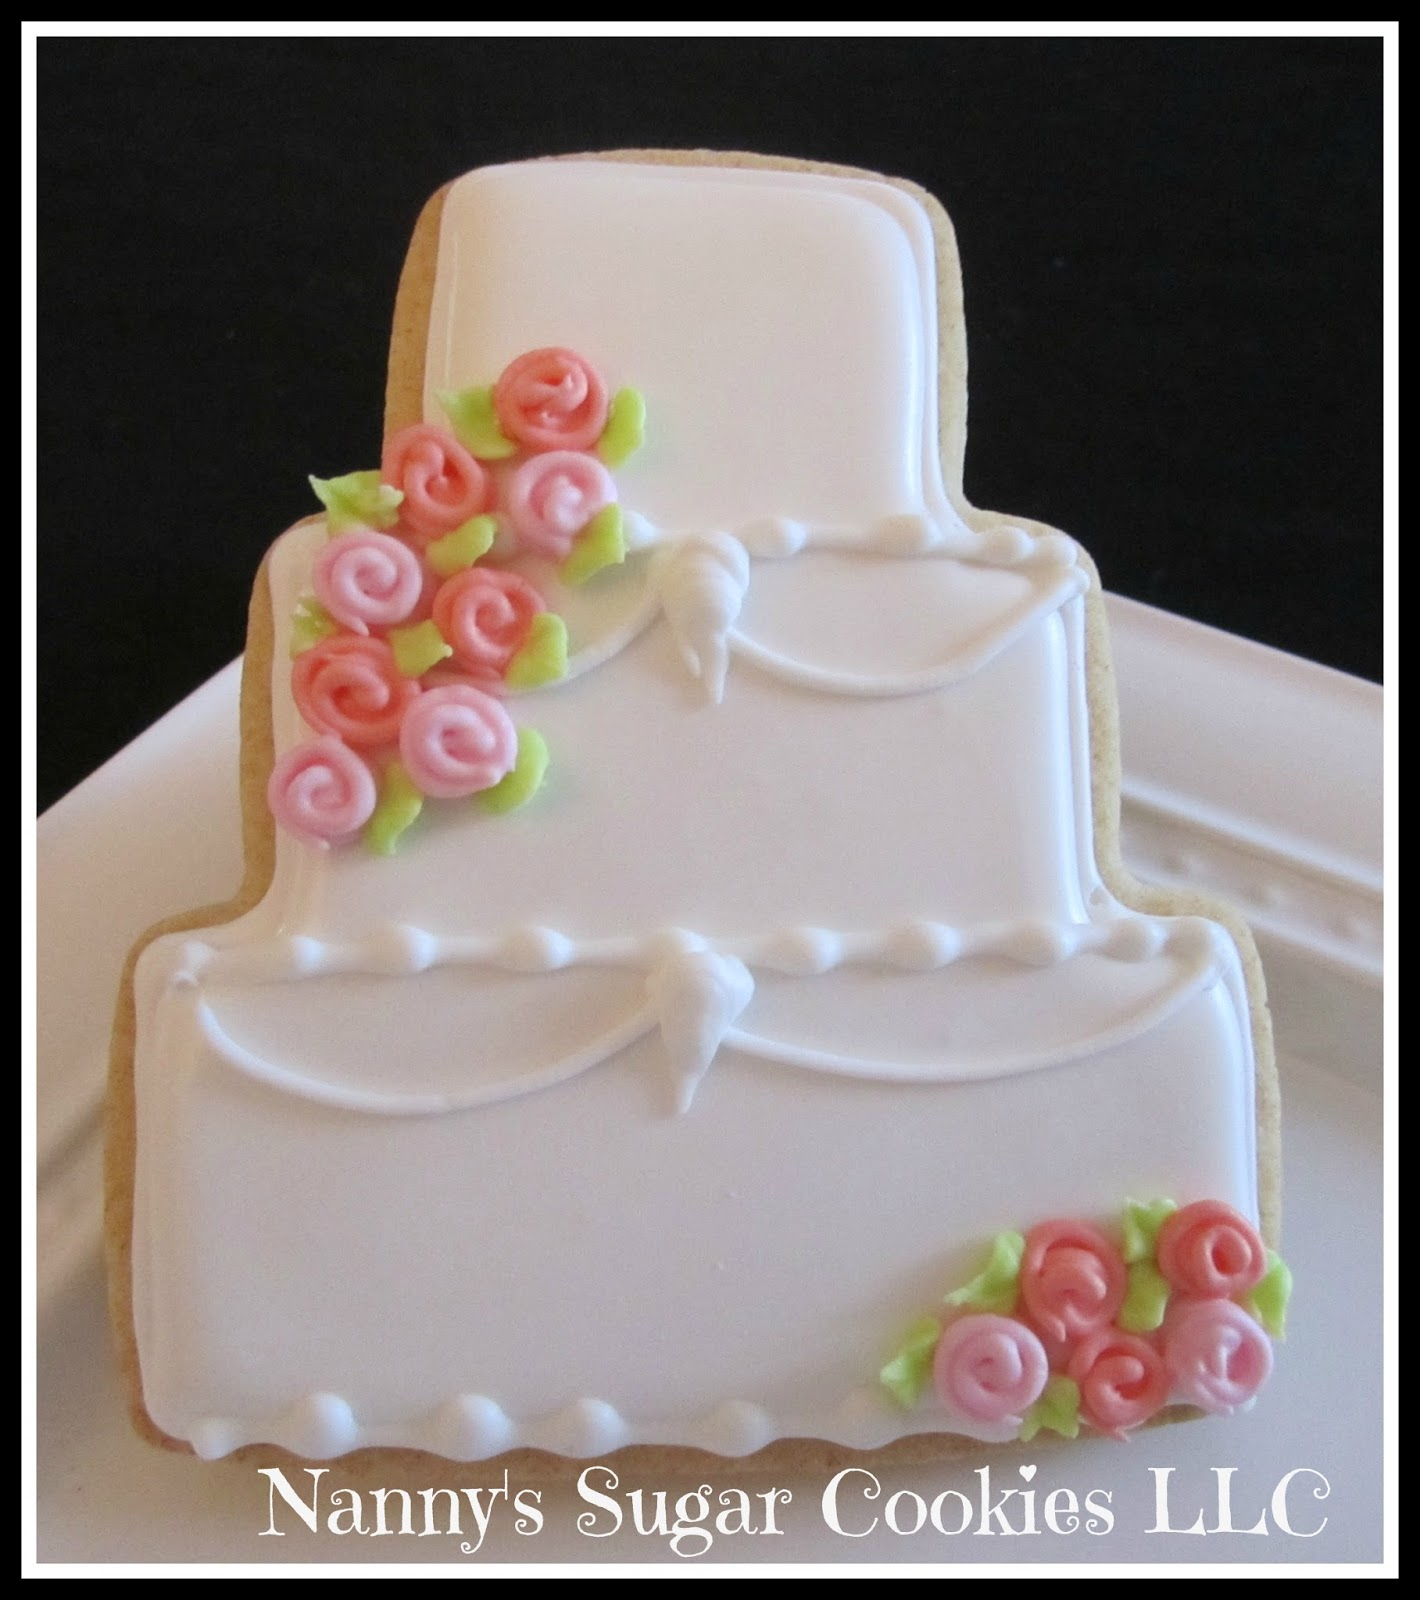 sugar cookie wedding cakes nanny s sugar cookies llc 20566